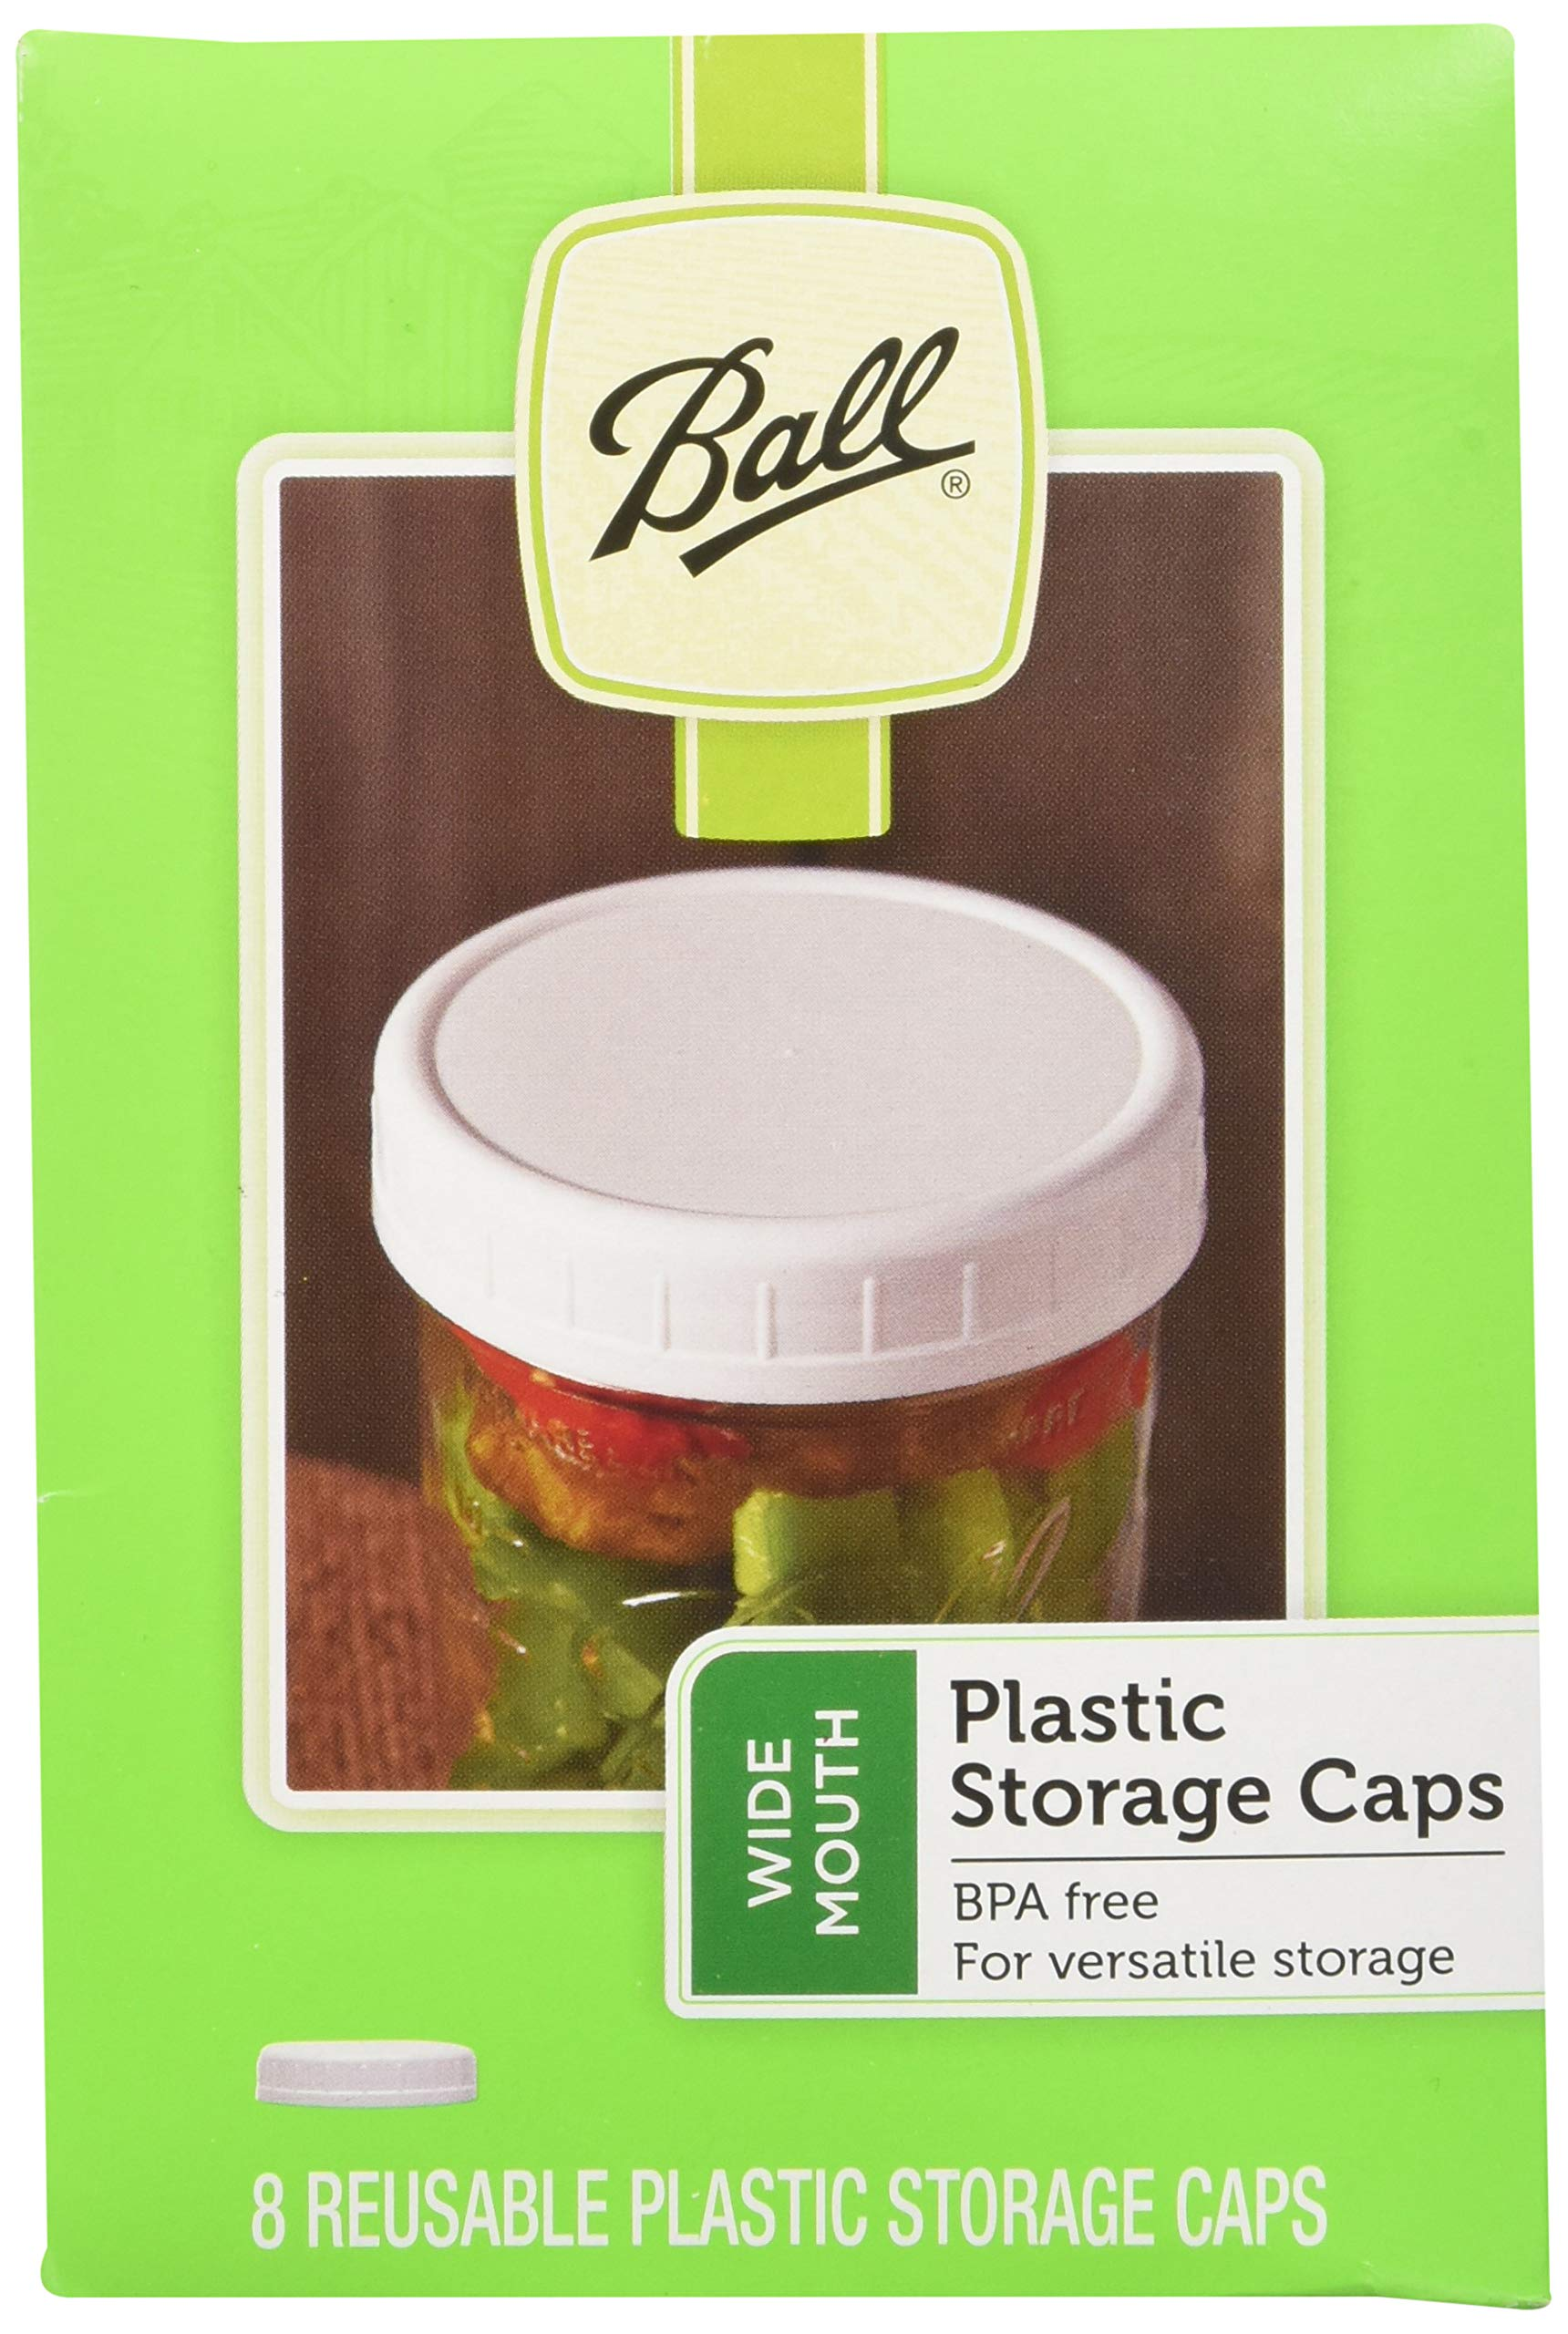 Ball Wide-mouth Plastic Storage Caps, 16-count (one size)